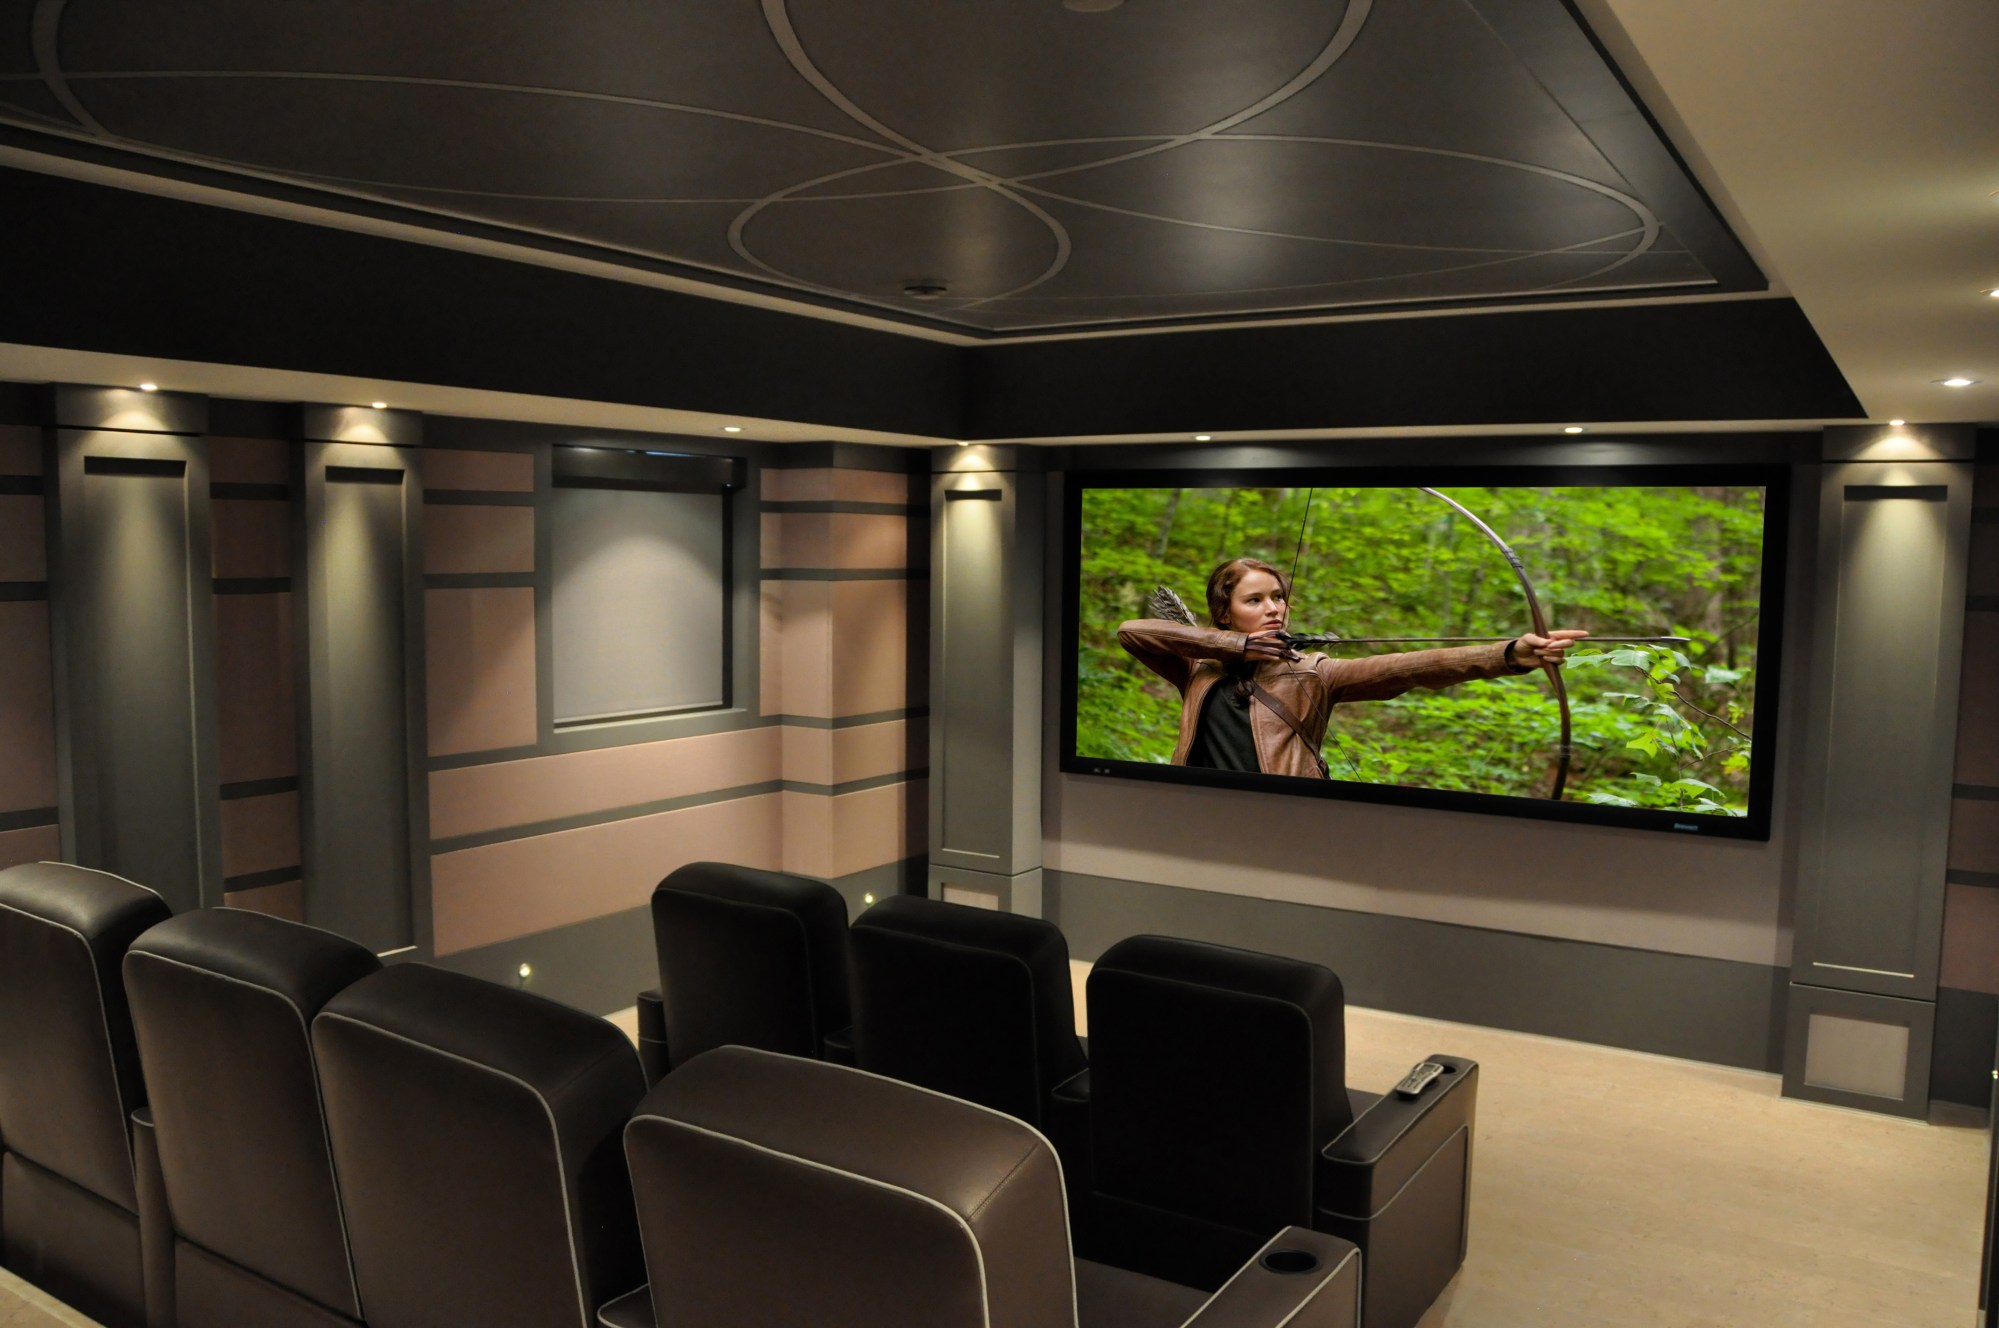 hight resolution of av 101 design electronics staged cinema seating concealed wiring speaker projector mountings